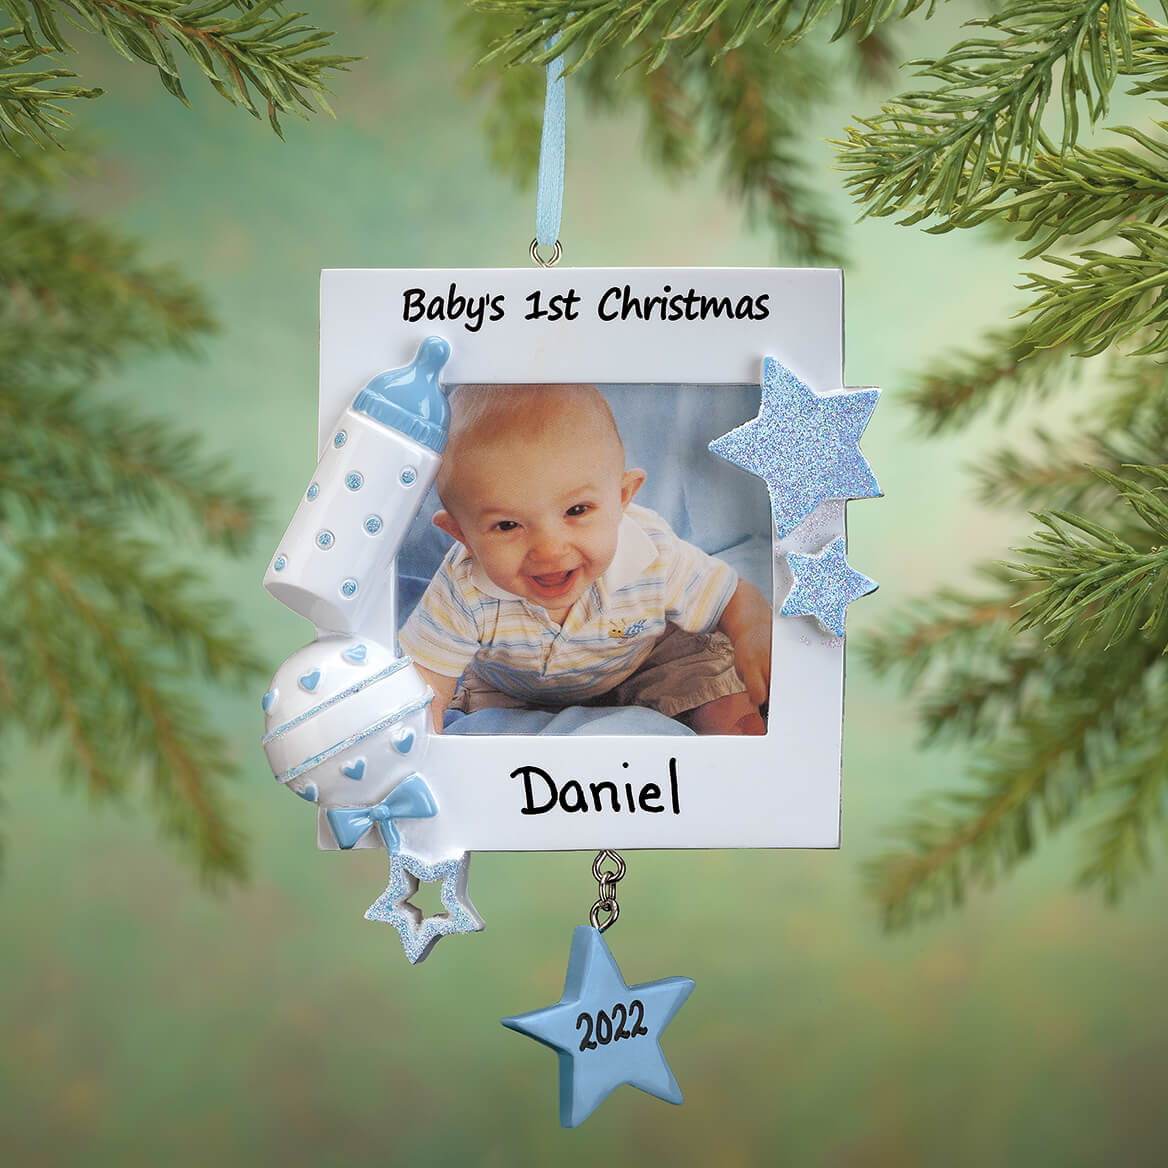 Personalized Babys First Christmas Frame Ornament Miles Kimball